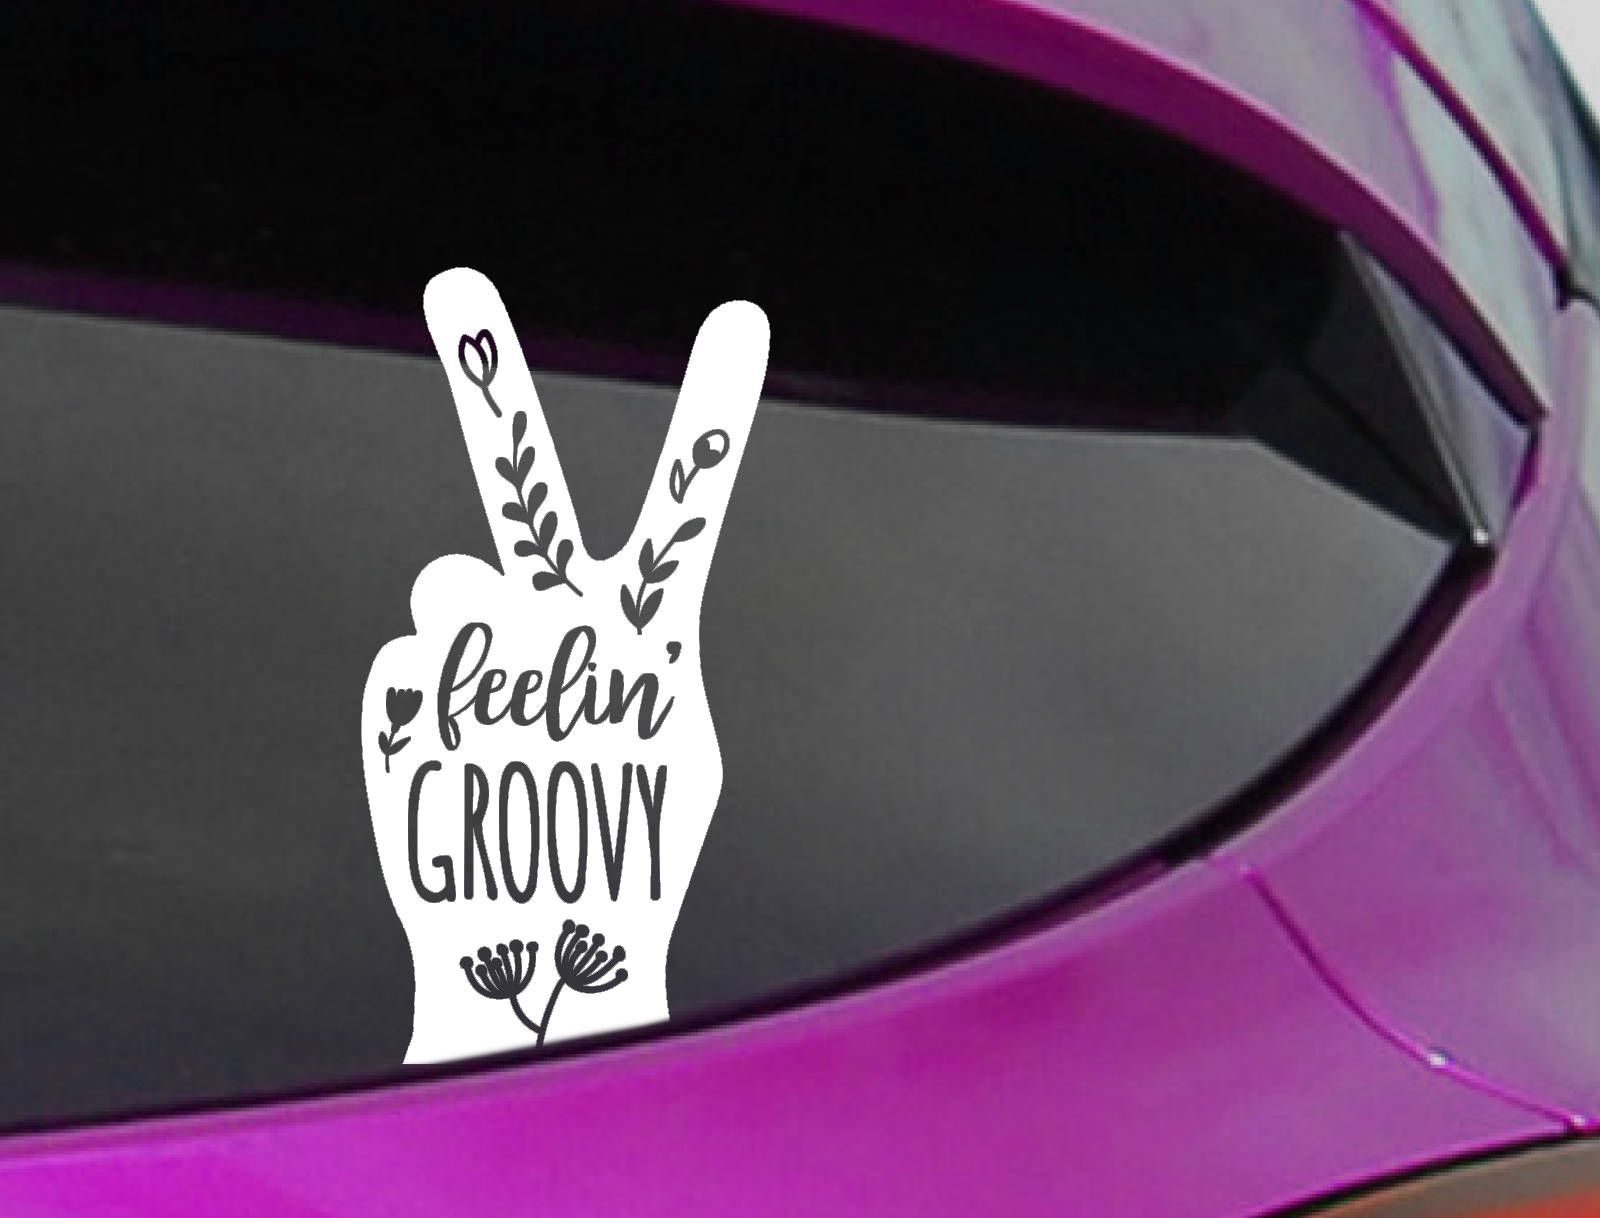 Feeling Groovy Decal - Gifts for Hippies - Peace Sign ...